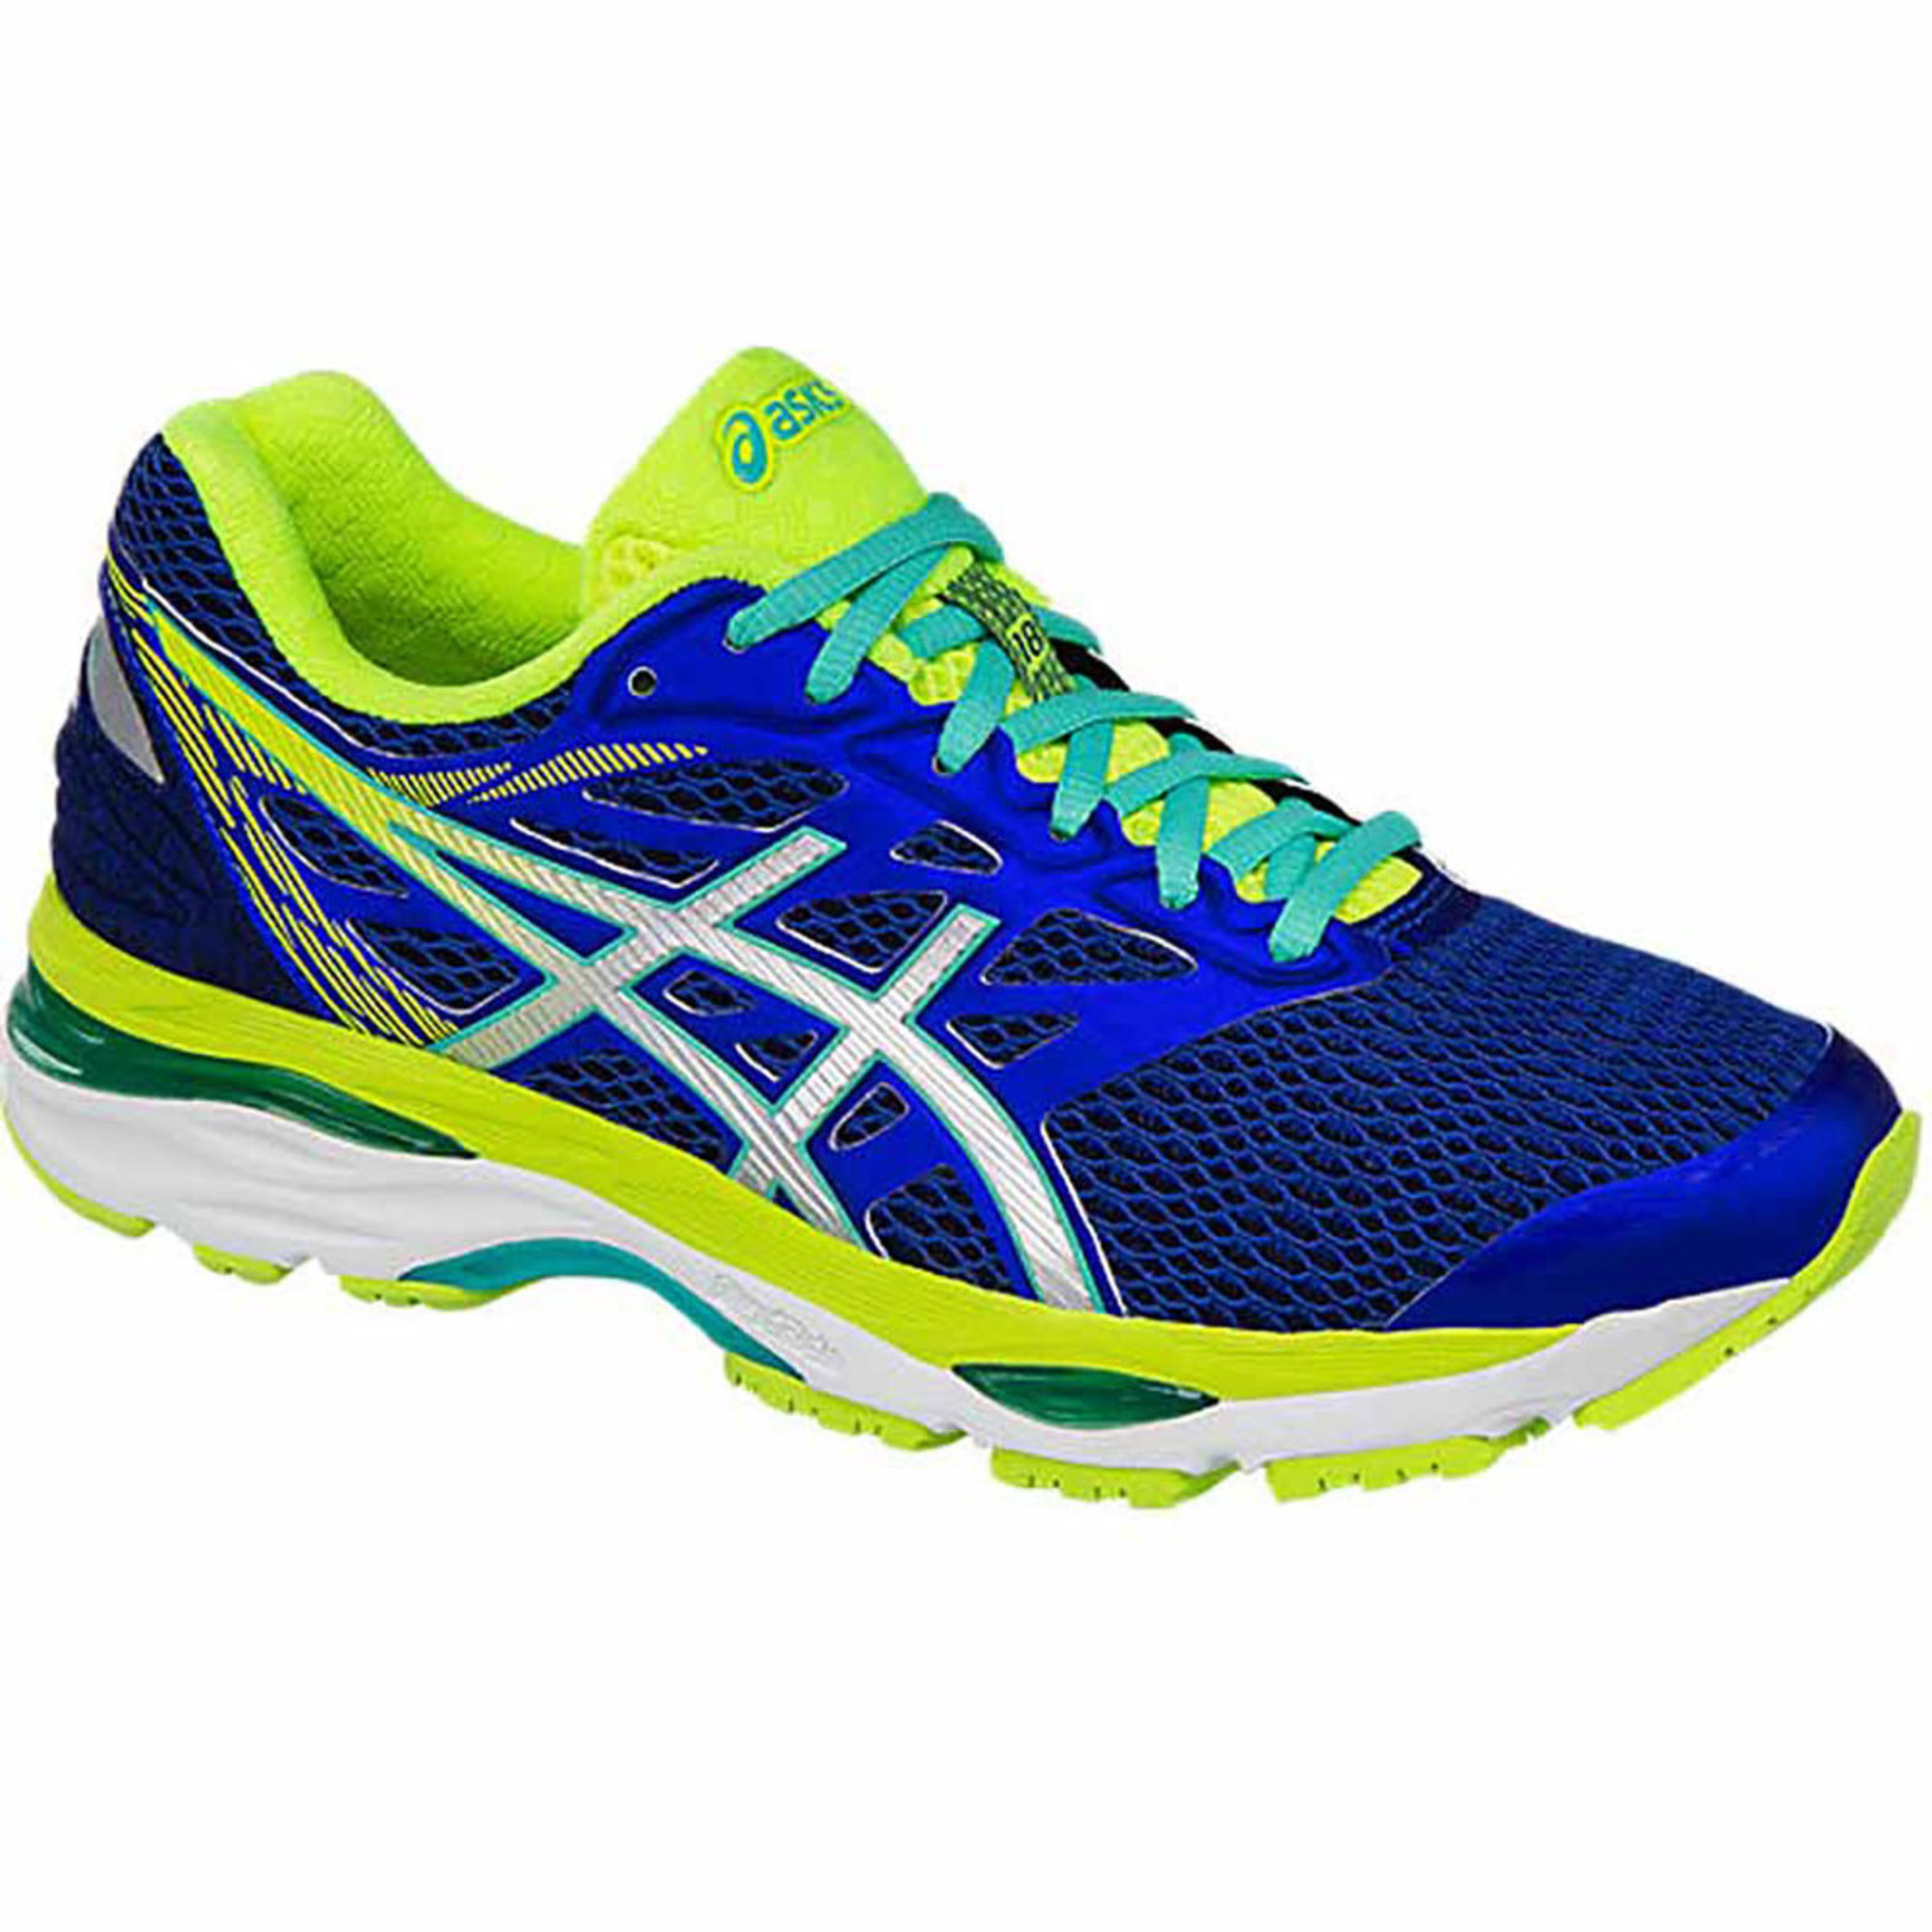 Asics Running shoes Womens Yellow Blue Silver Gel cumulus 18 Asics Safety